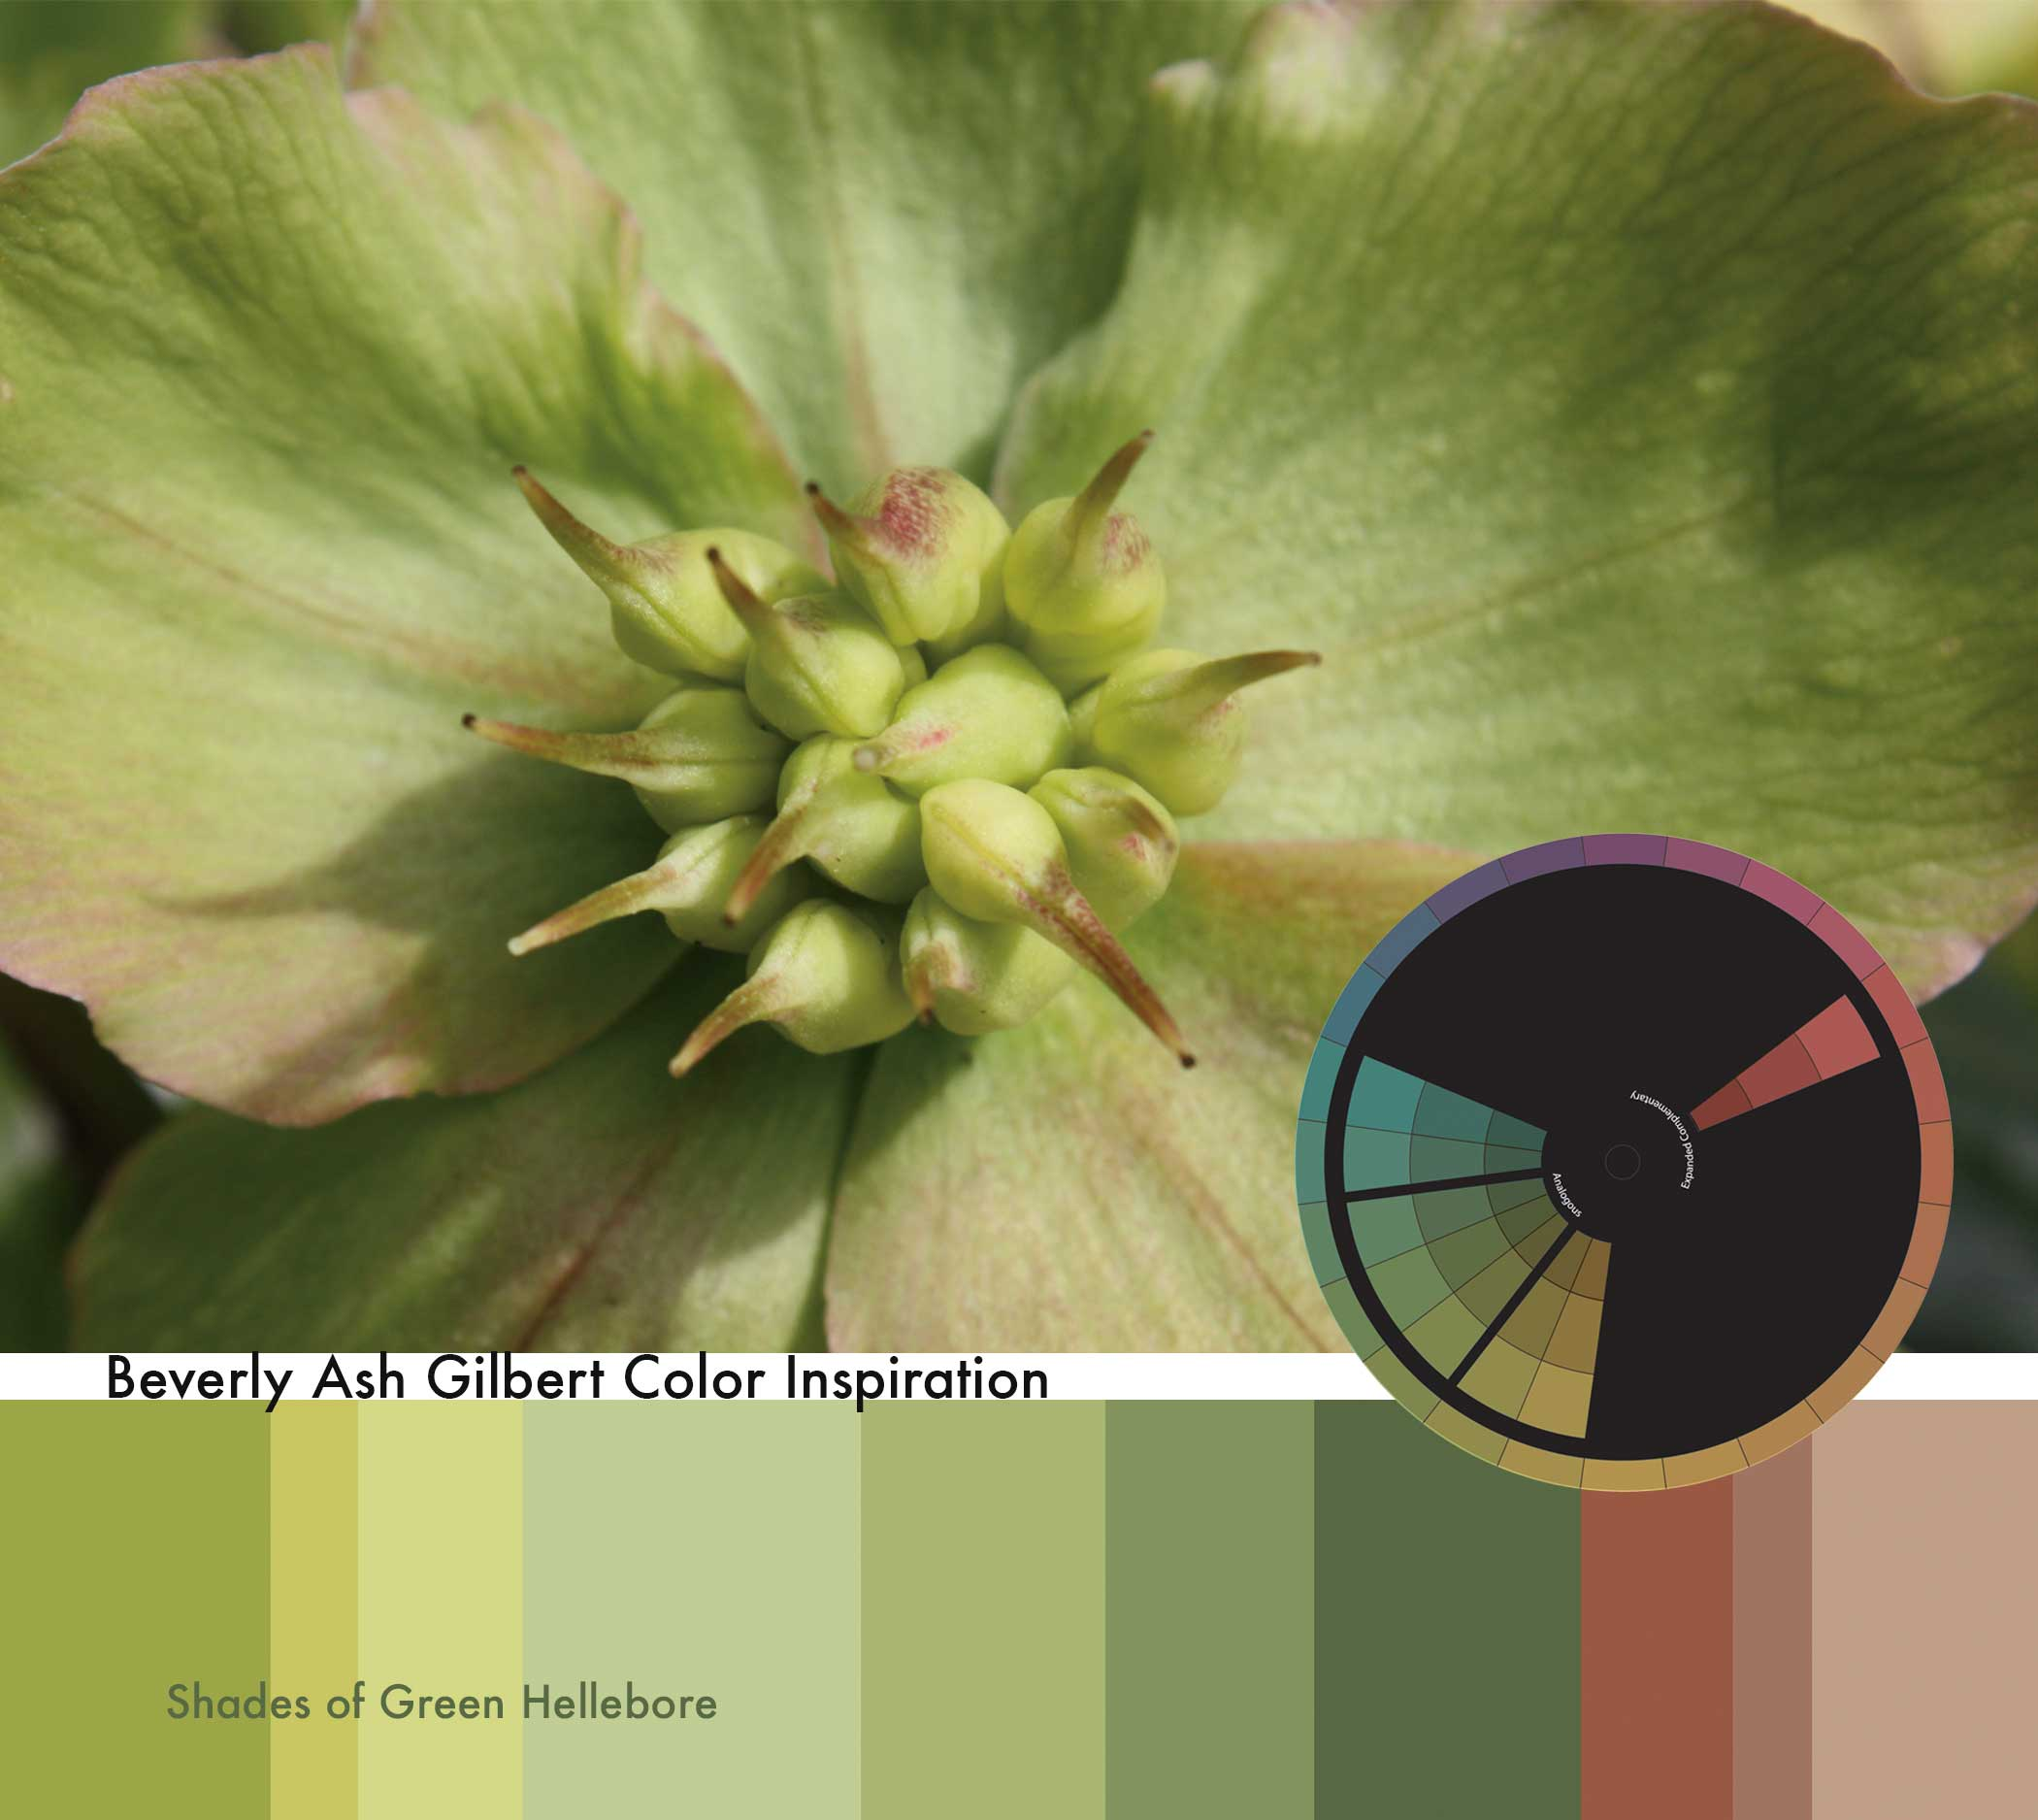 ColorInspiration_ShadesOfGreenHellebore_small.jpg